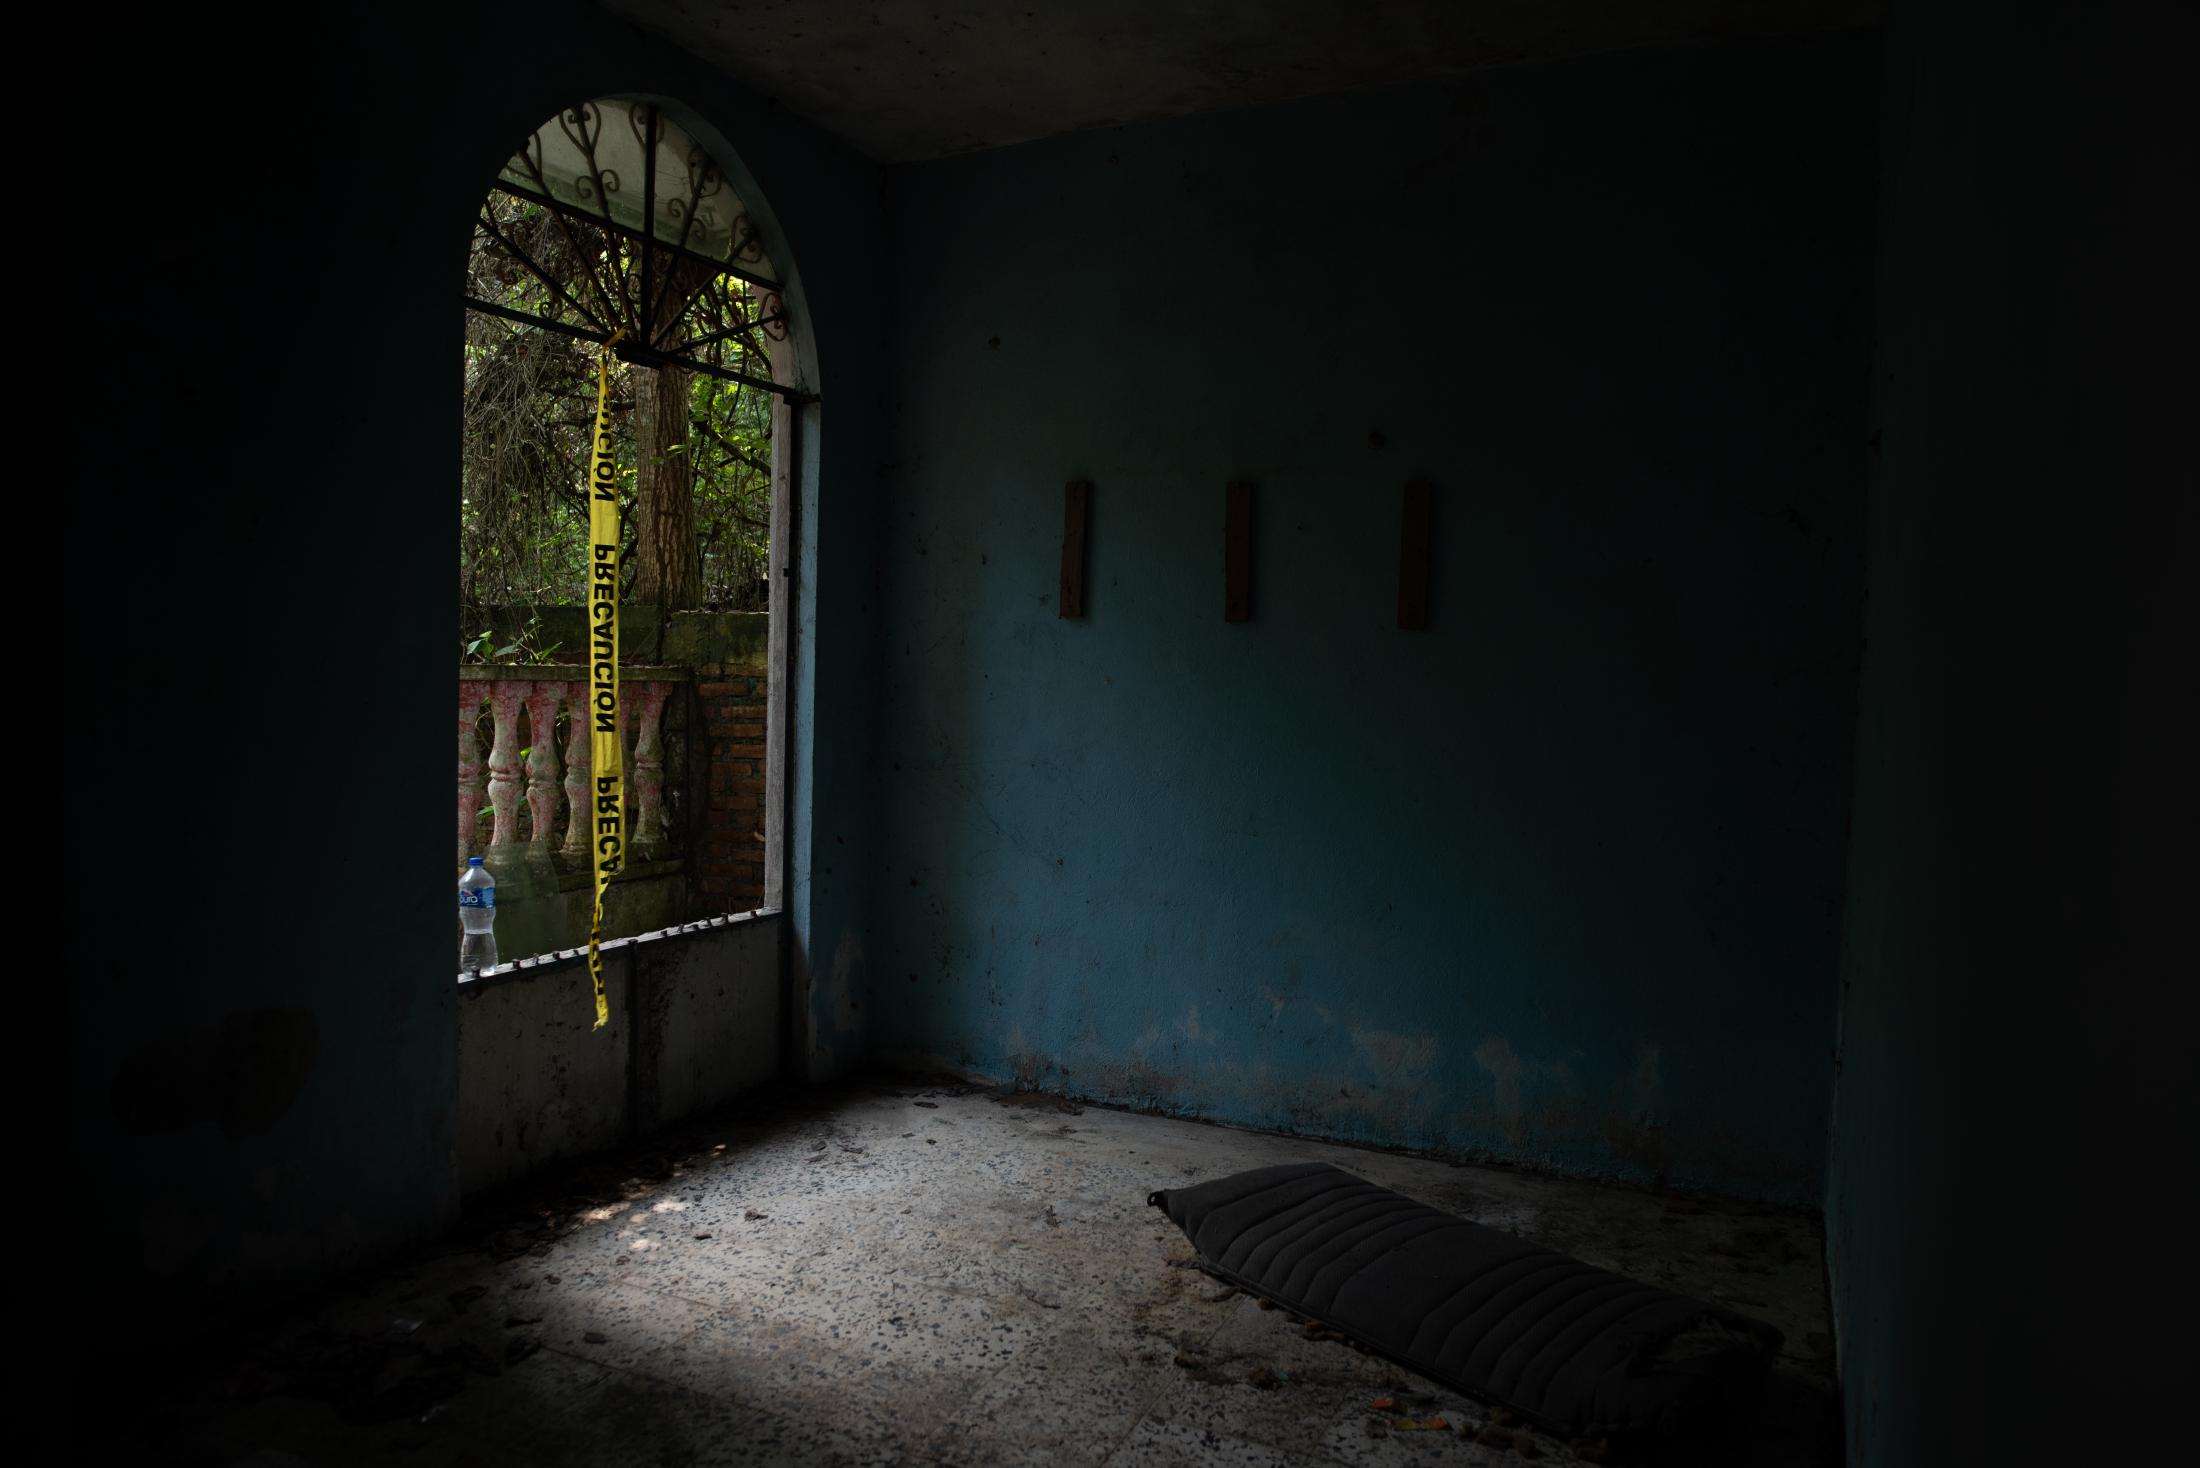 """Interior view of the house located in the ranch """"La Gallera"""" where human remains have been located during the fifth National Missing Persons Search Brigade in Tihuatlán, Veracruz, Mexico, on February 20, 2020. Victoria Razo for NPR"""